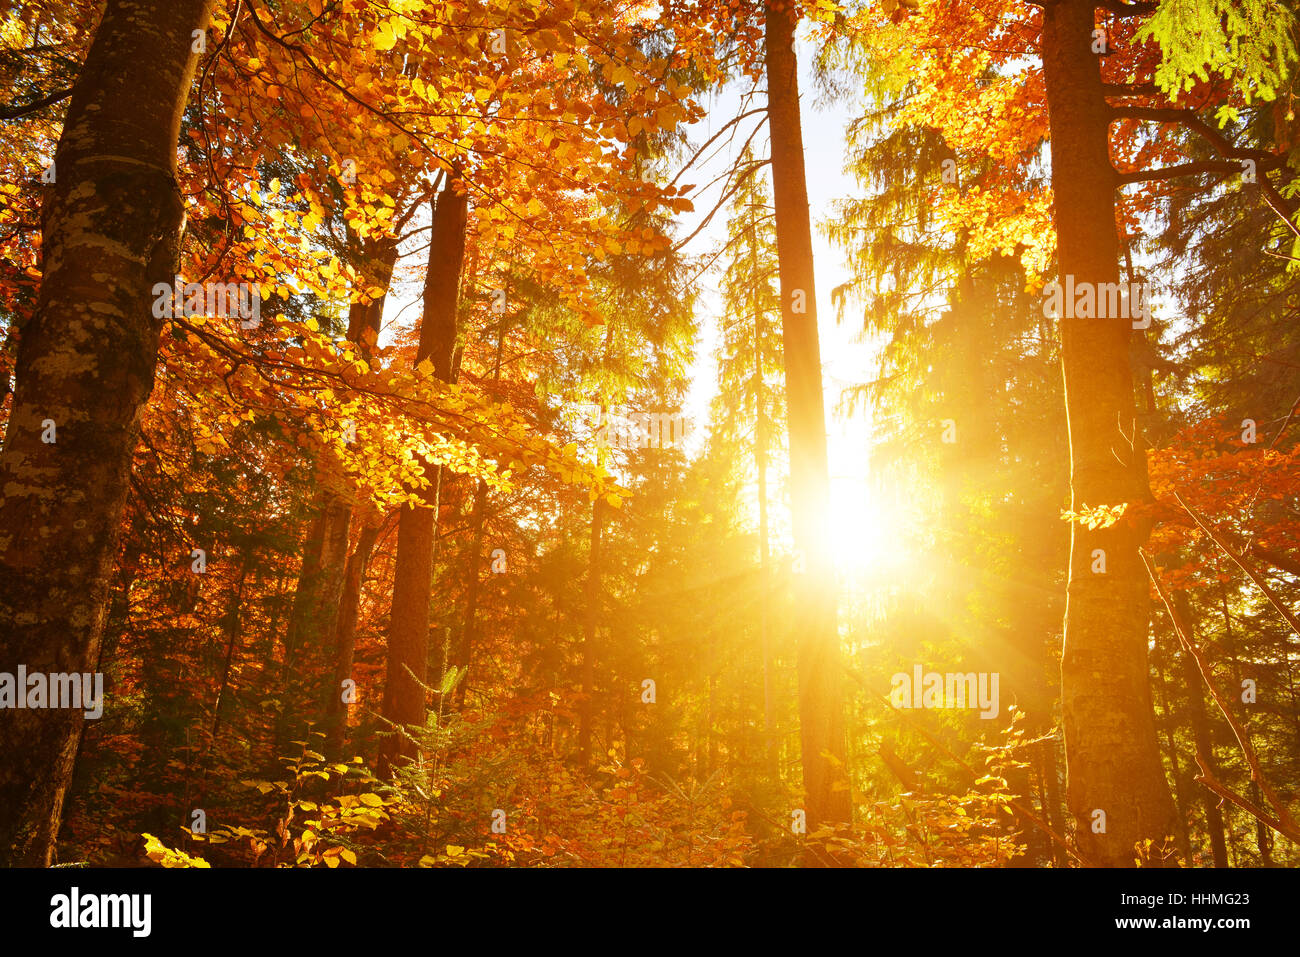 Warm sunlight in autumn leaf forest Stock Photo